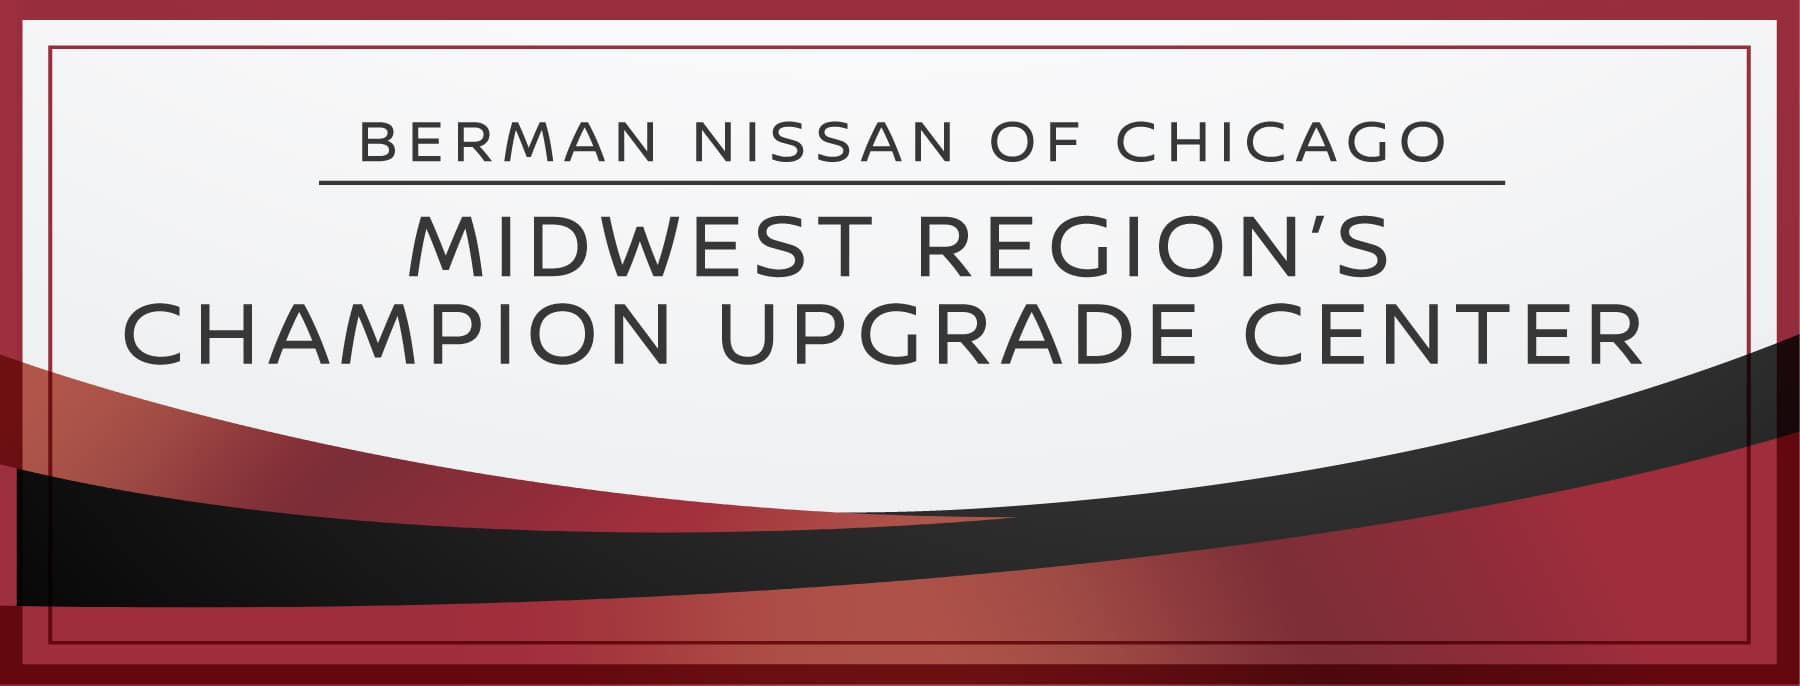 Upgrade Center at Berman Nissan of Chicago